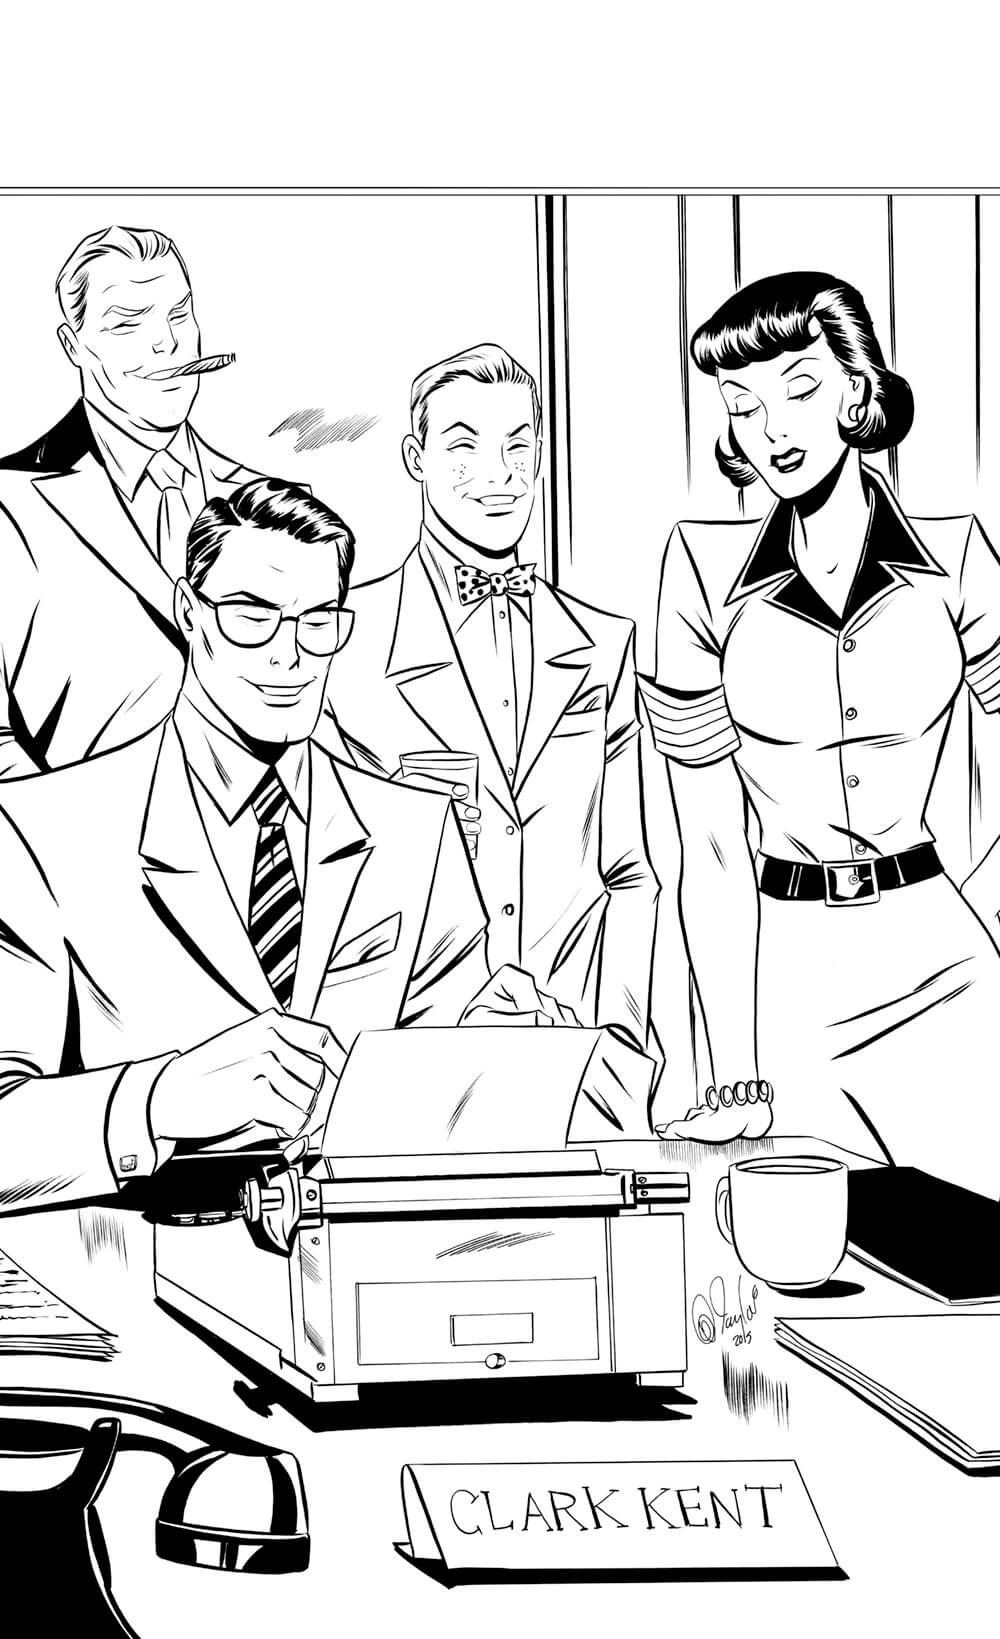 Lois Lane by Des Taylor